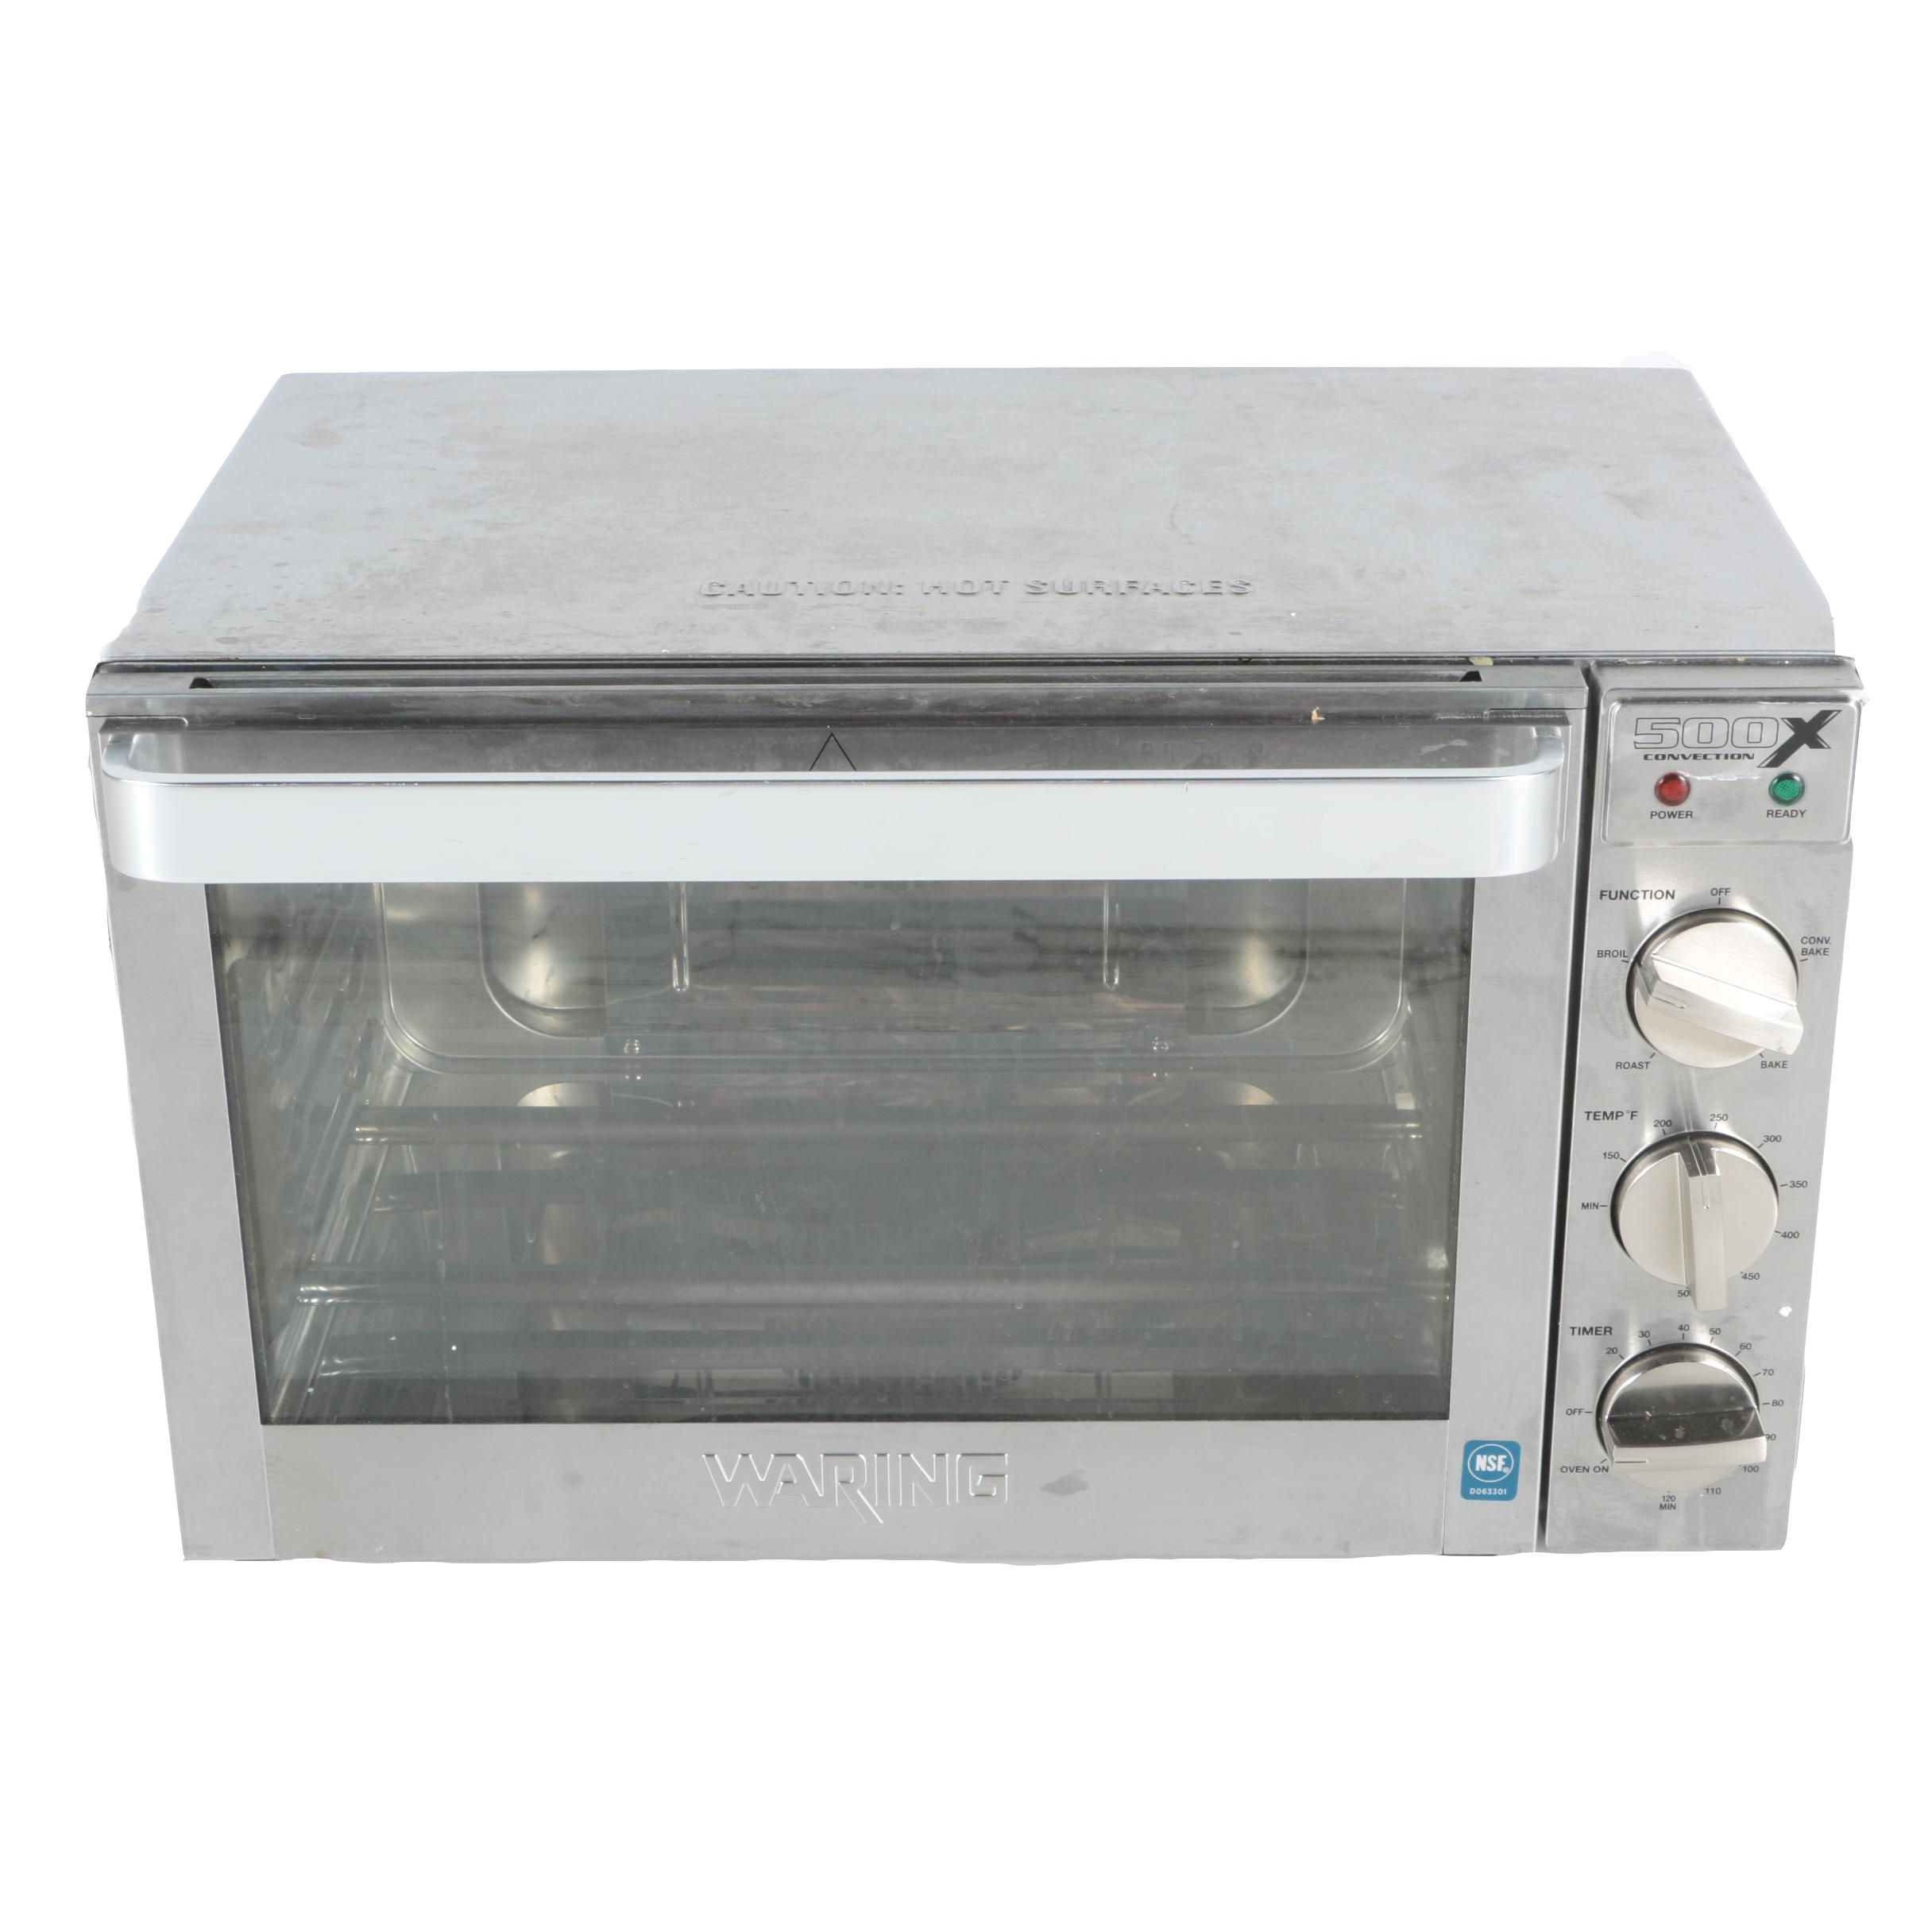 Waring WCO500X Half Size Countertop Convection Oven